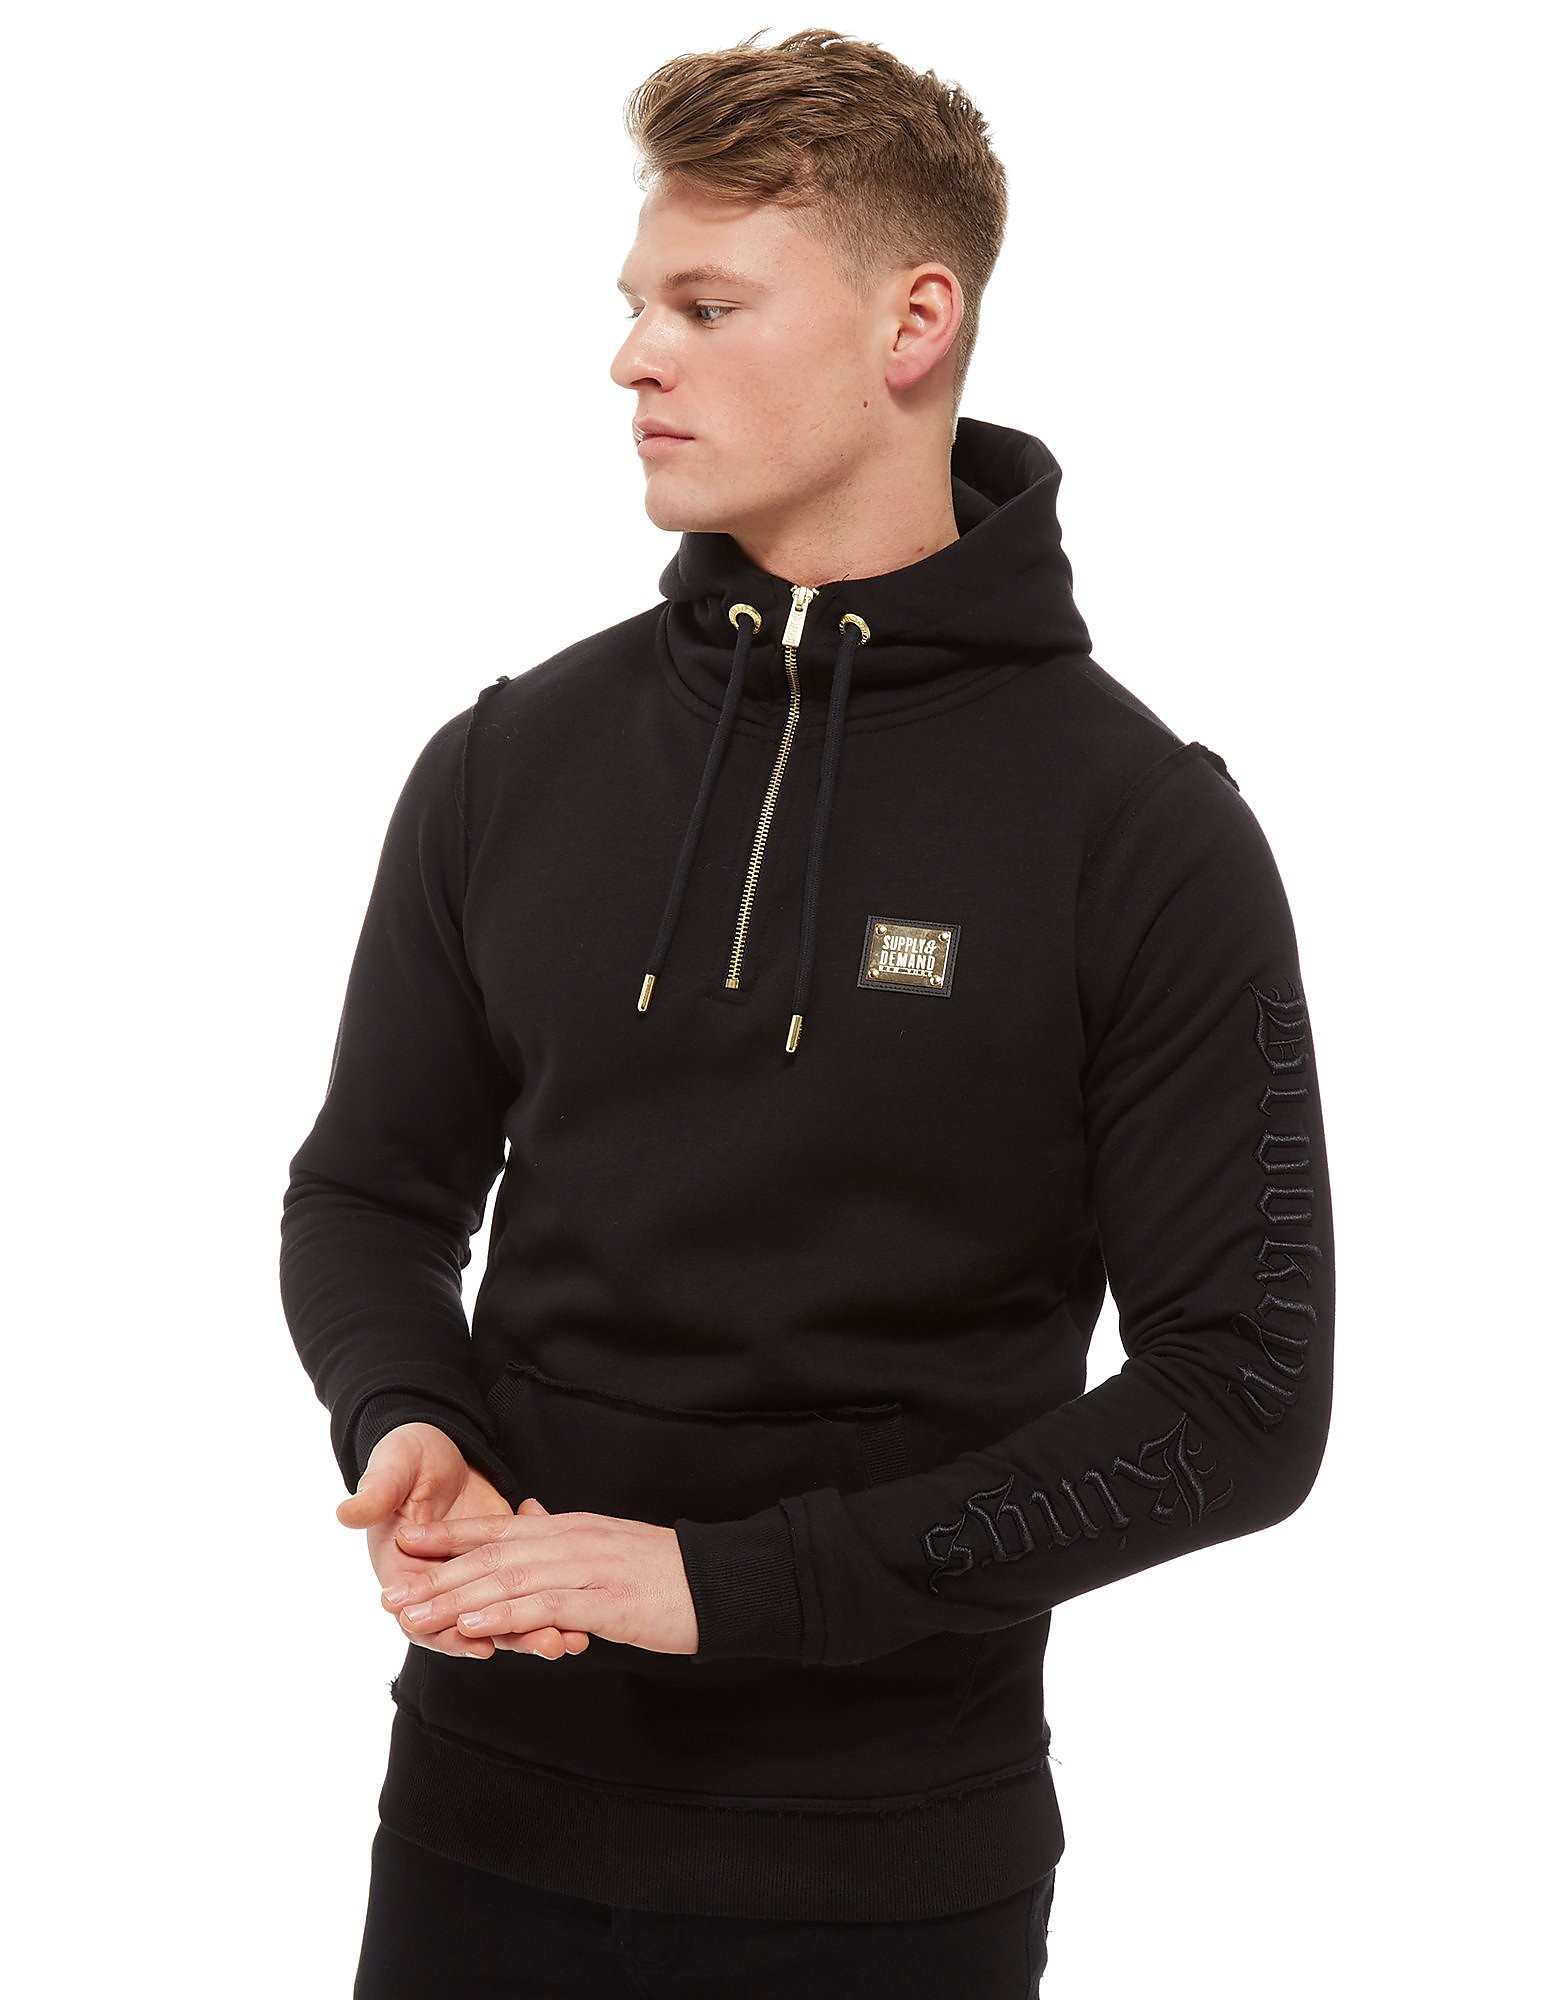 Supply & Demand Observe 1/4 Zip Hoodie - Only at JD, Black